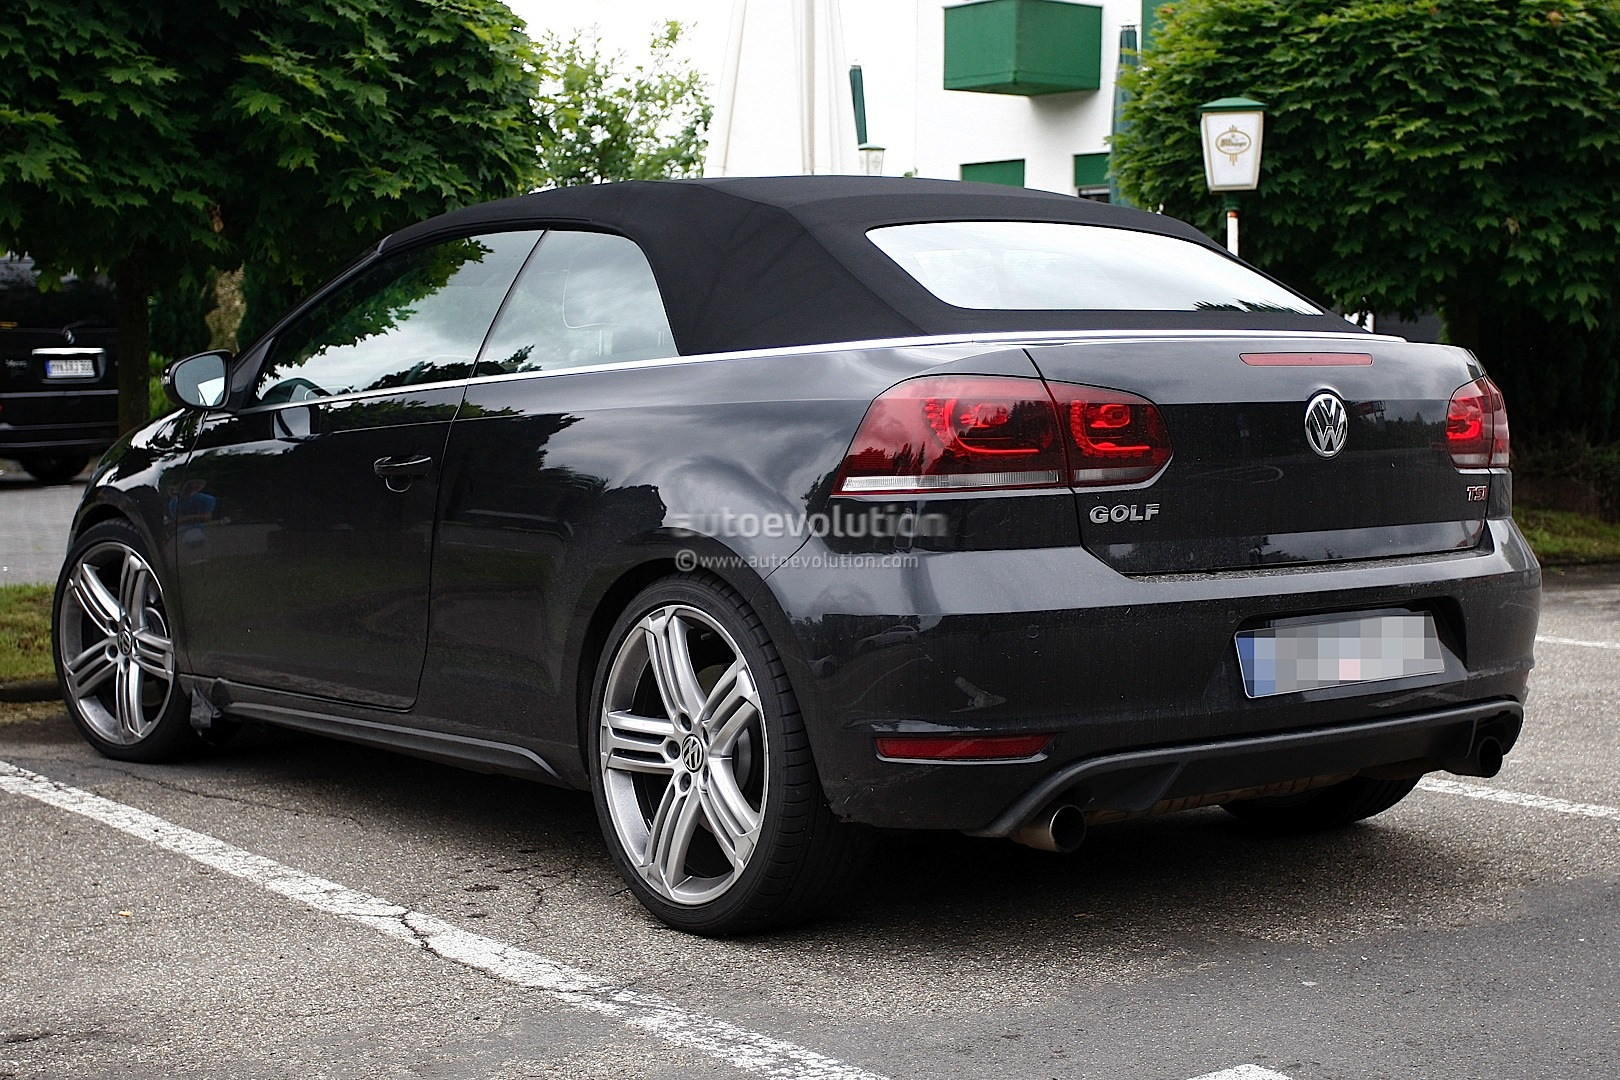 vw golf r cabrio image 3. Black Bedroom Furniture Sets. Home Design Ideas